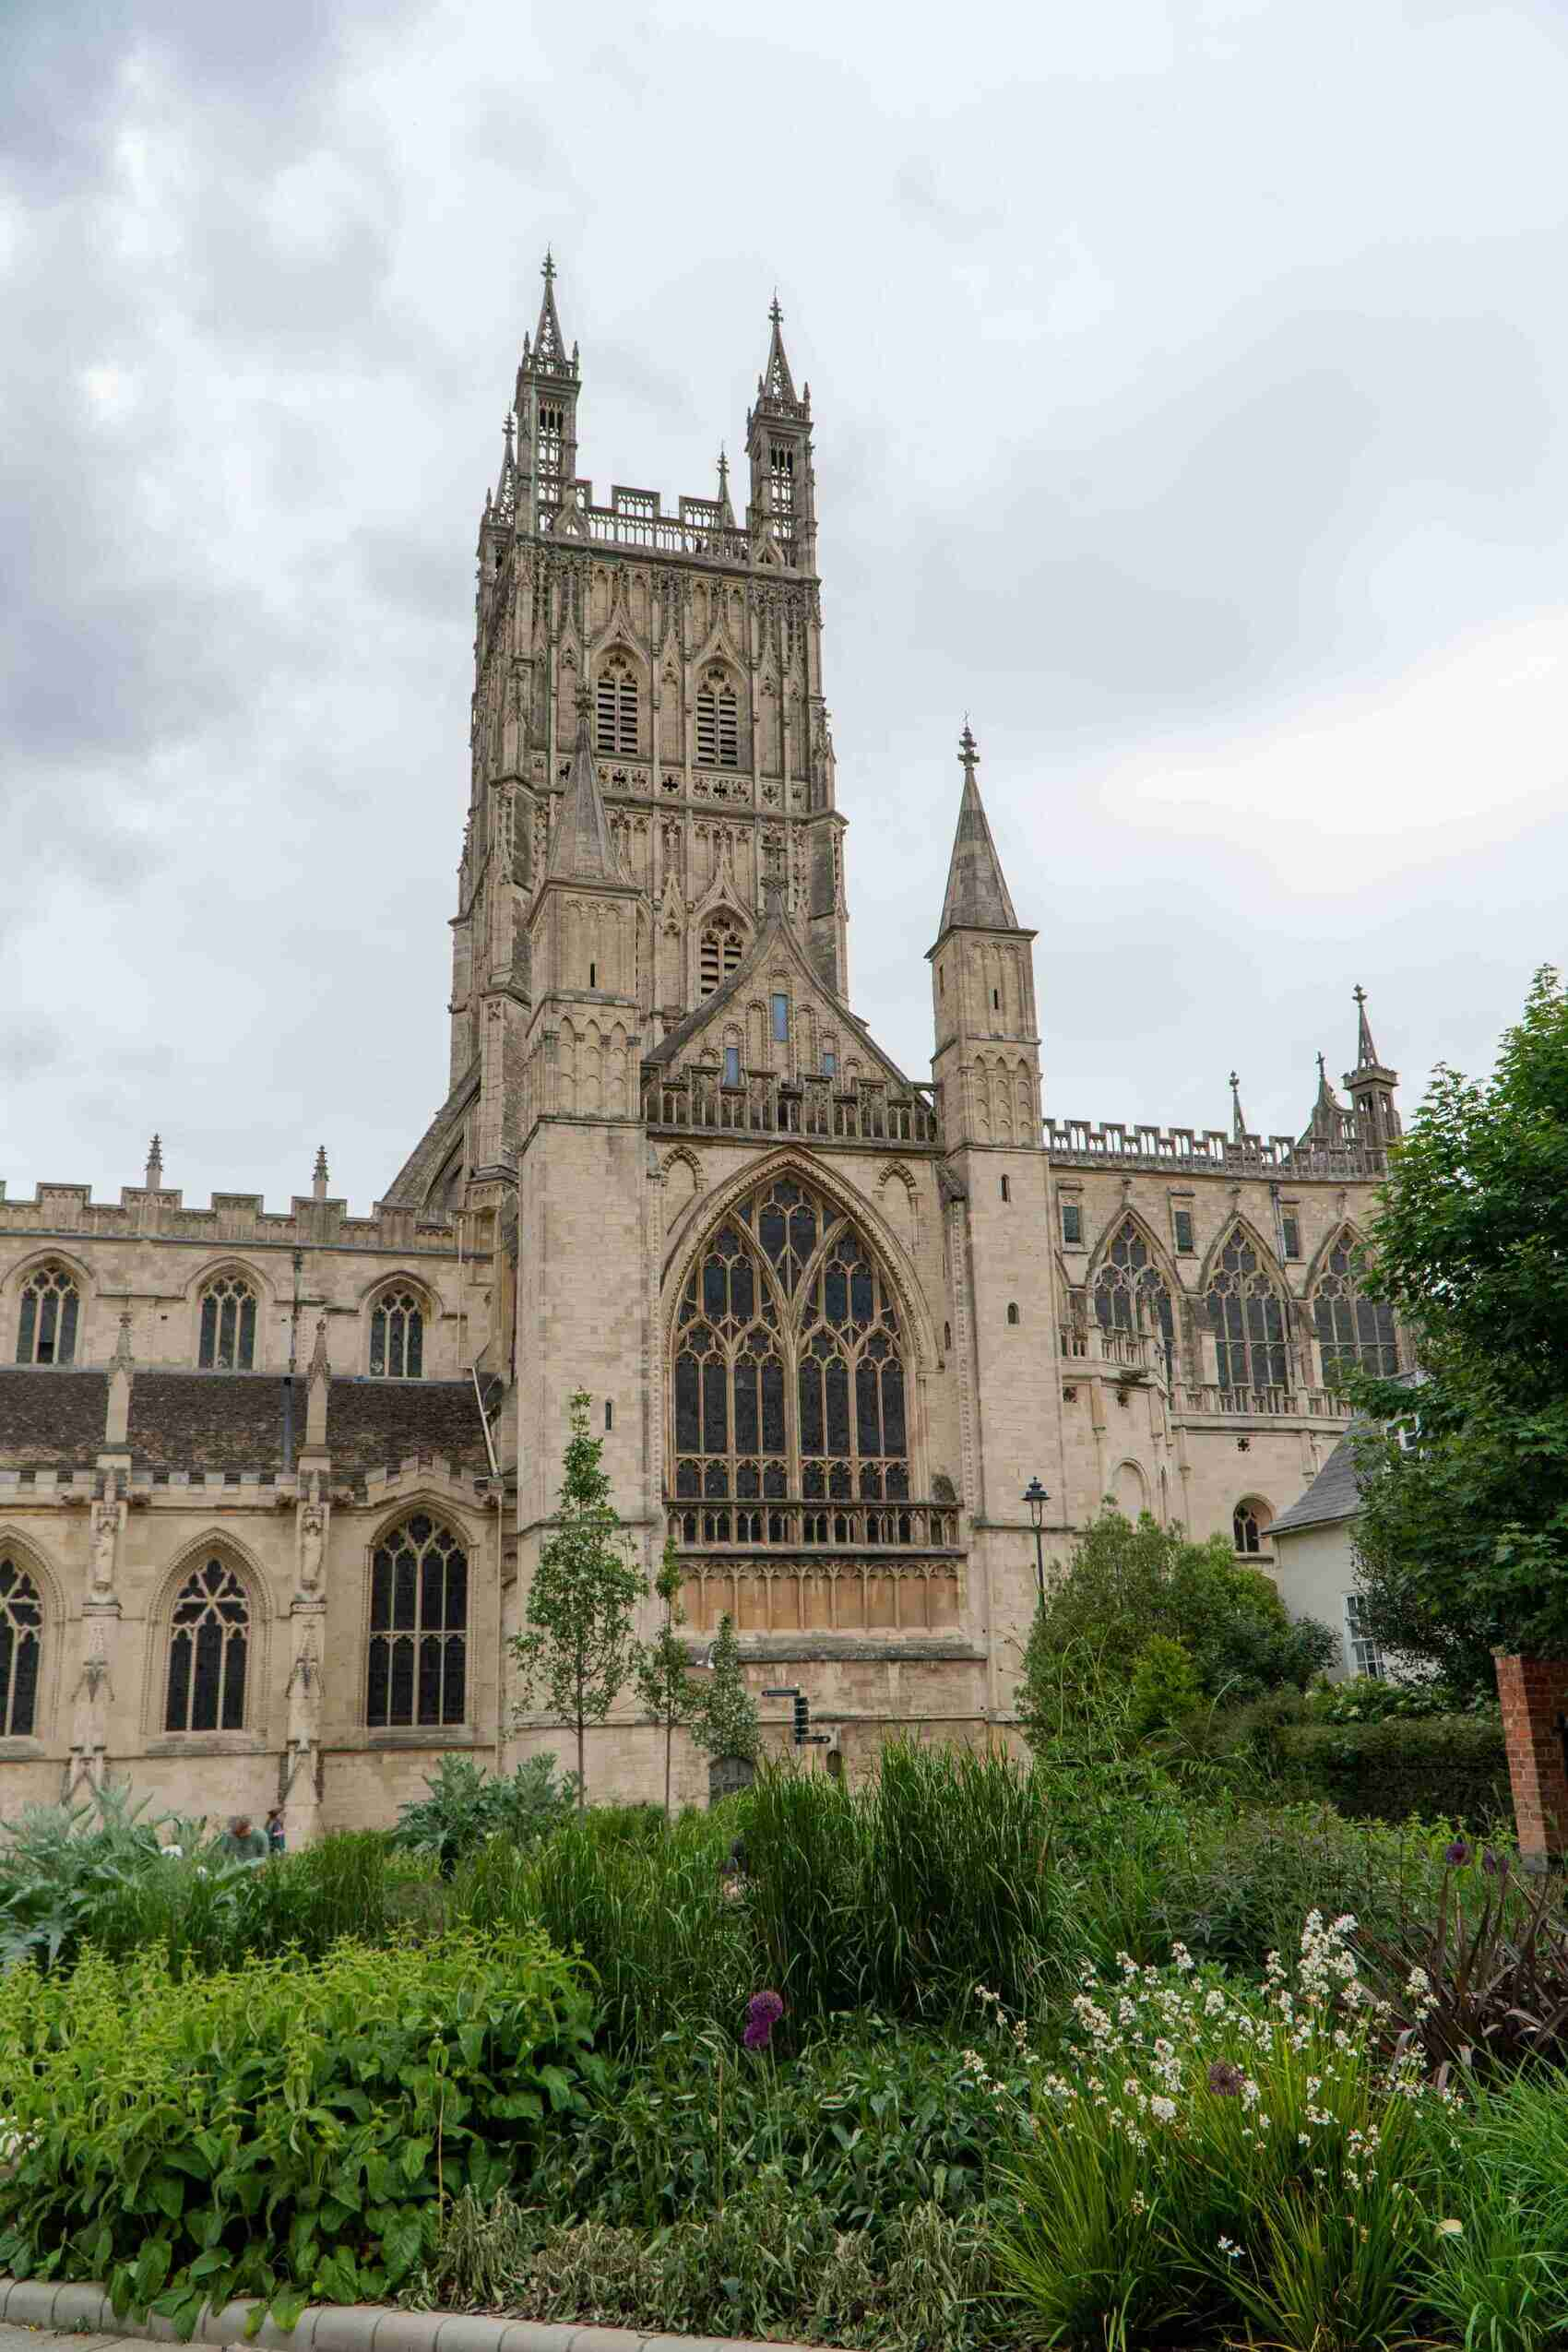 Historical cathedral city Gloucester